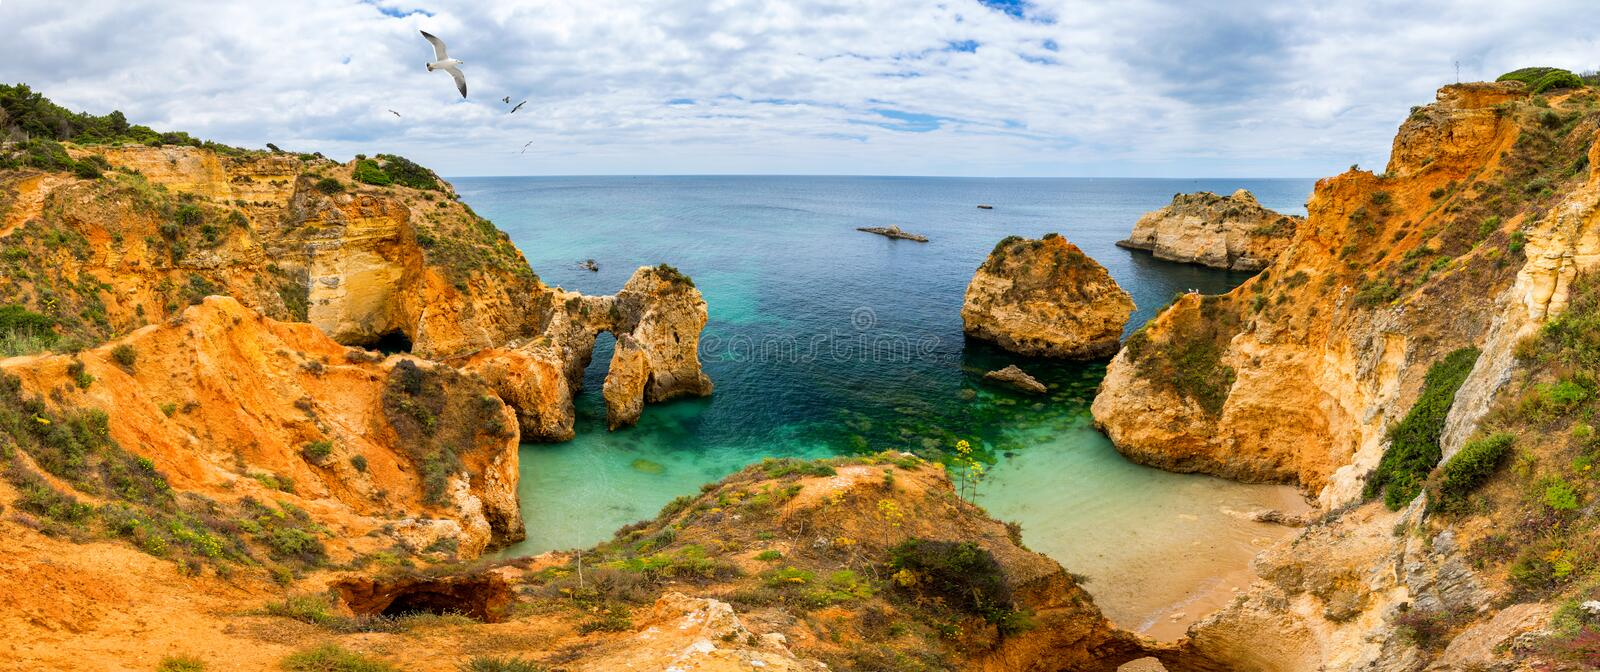 View of stunning beach with golden color rocks in Alvor town , Algarve, Portugal. View of cliff rocks on Alvor beach, Algarve royalty free stock images